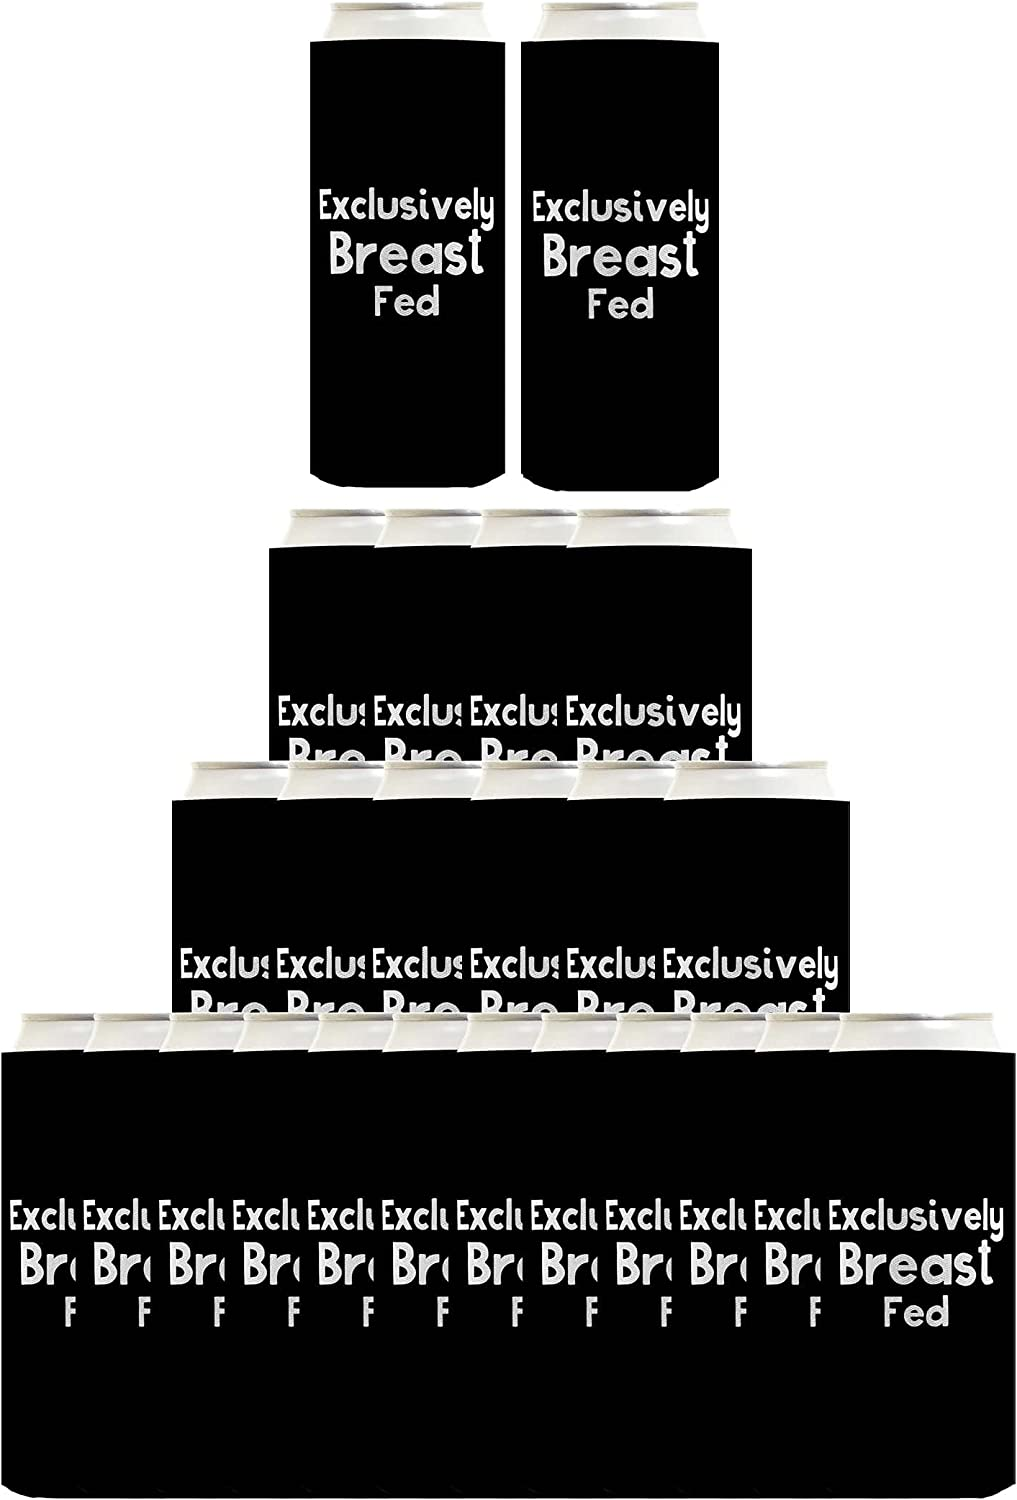 Breastfeeding Gifts Exclusively Breast Fed 24-Pack Ultra Slim Can Coolies Black